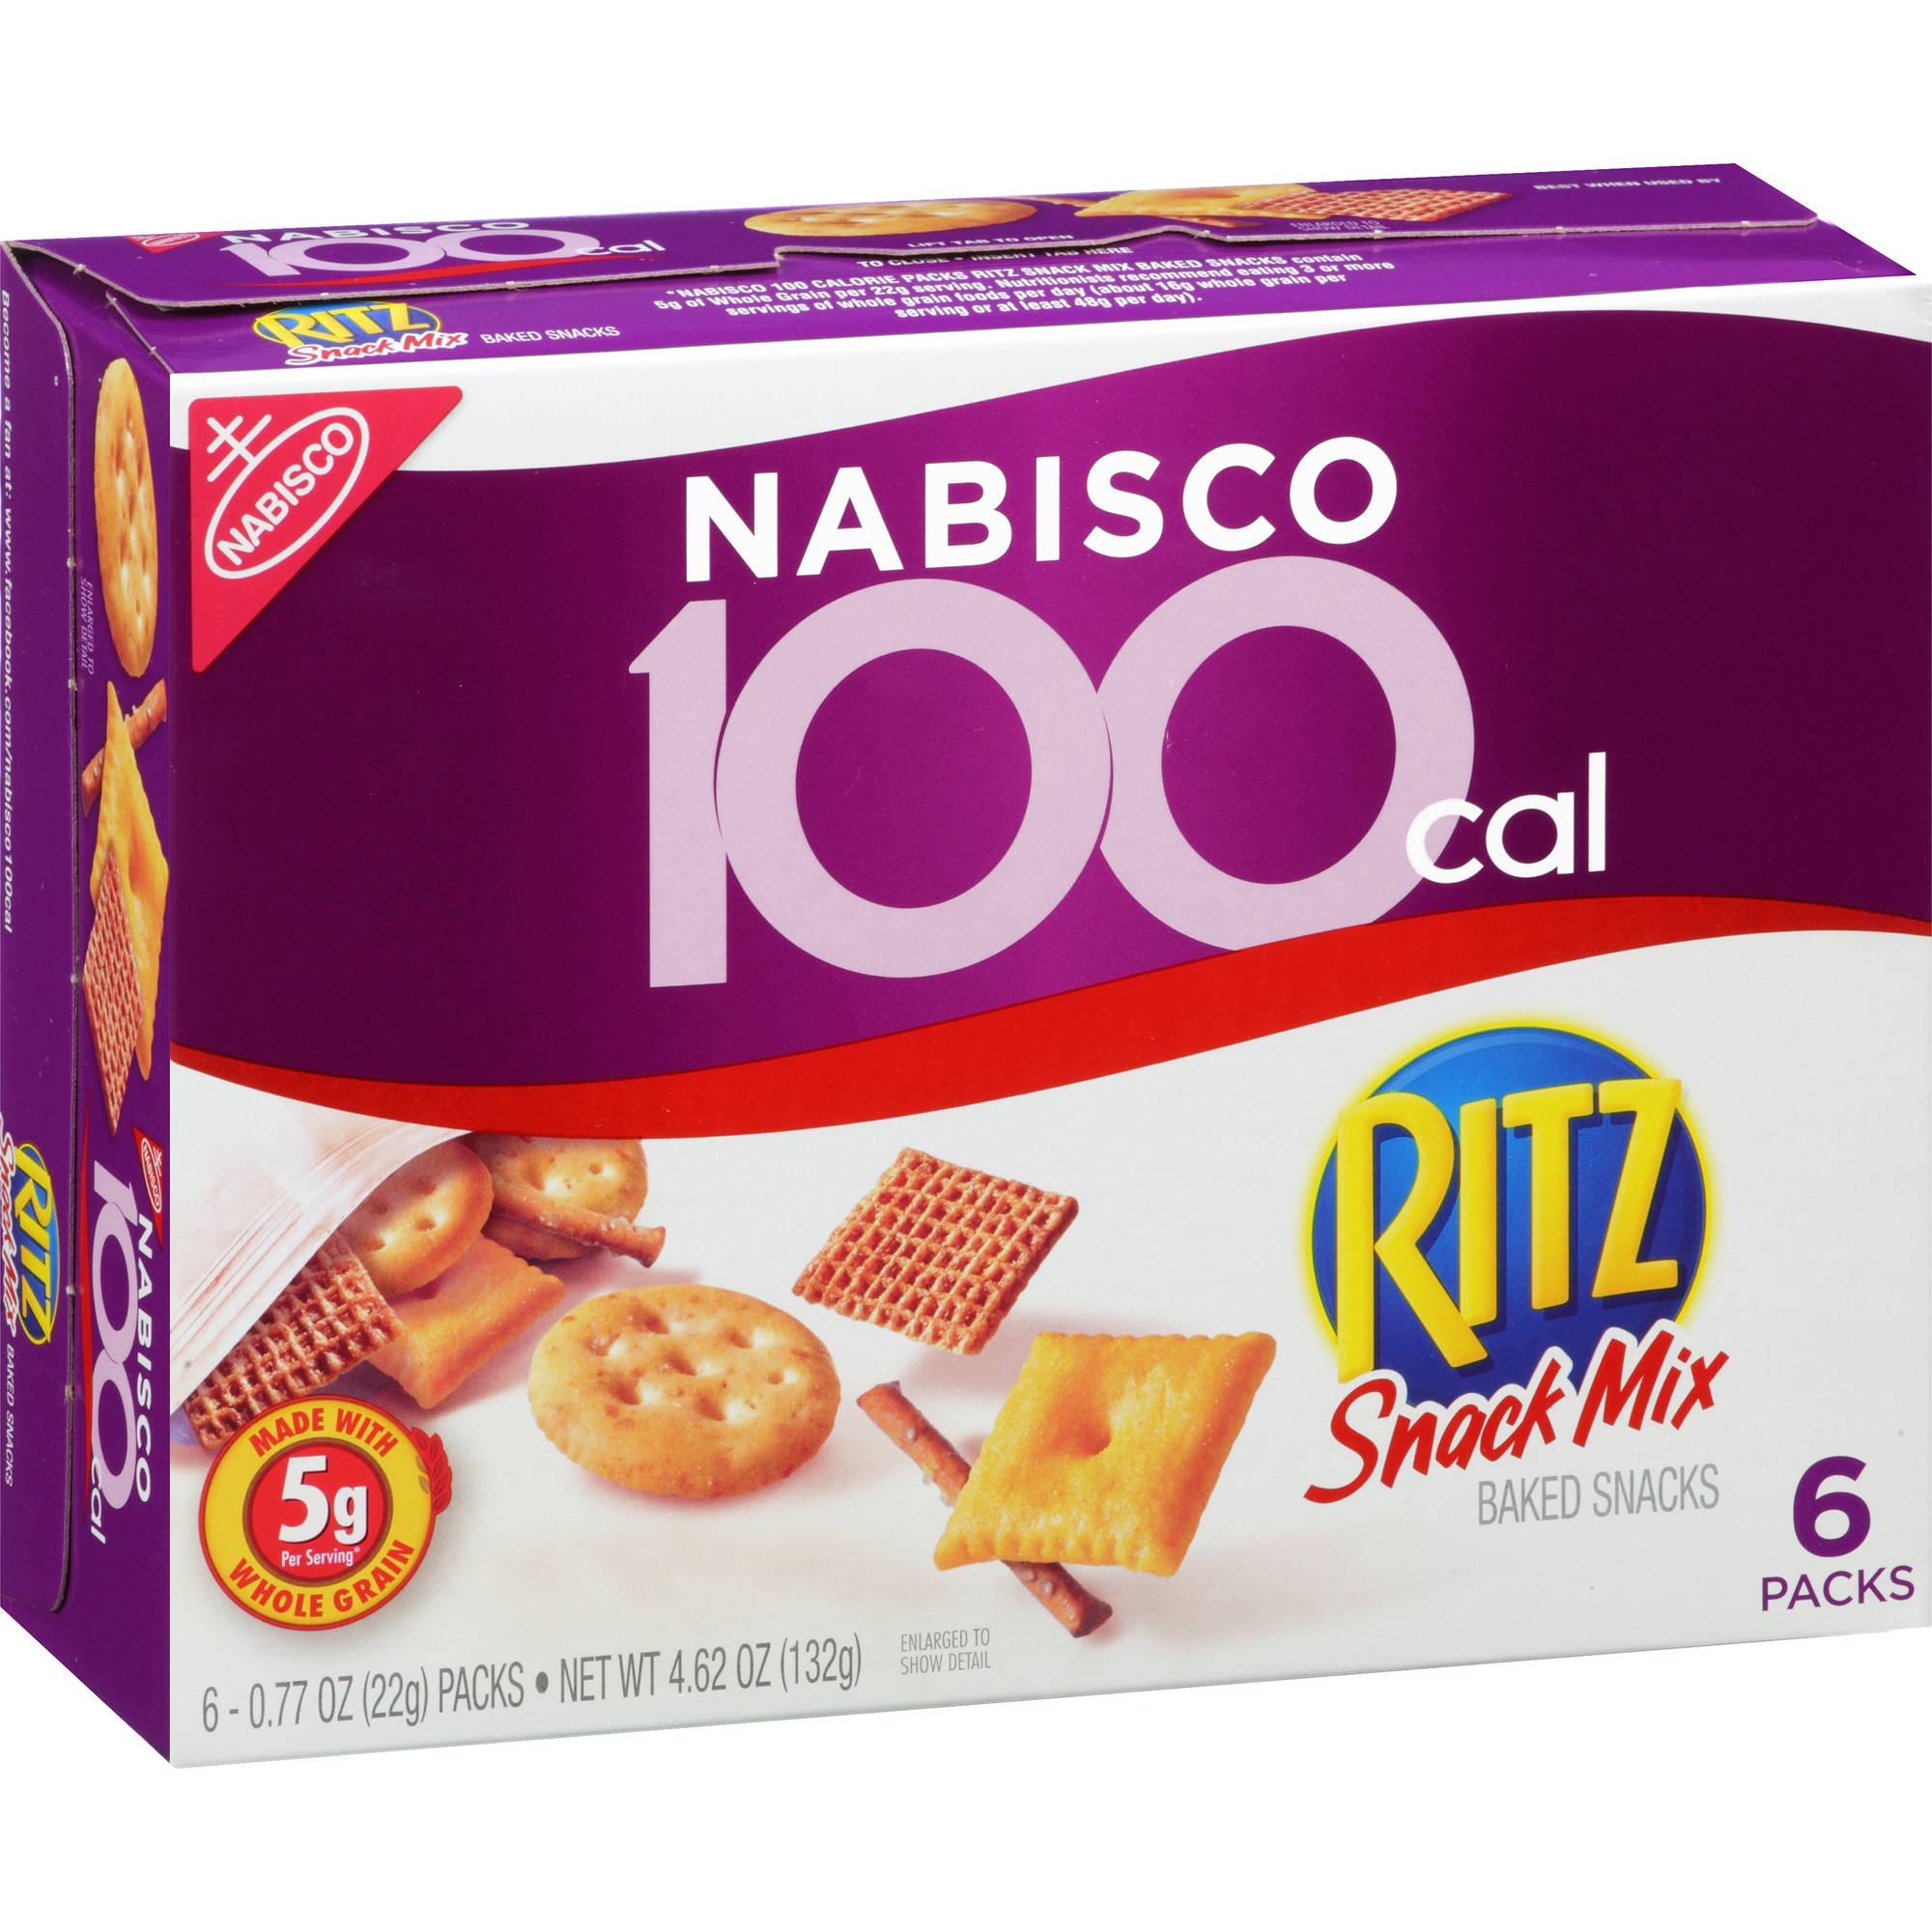 Nabisco 100 Calorie Ritz Snack Mix Baked Snacks, .77 oz, 6 count